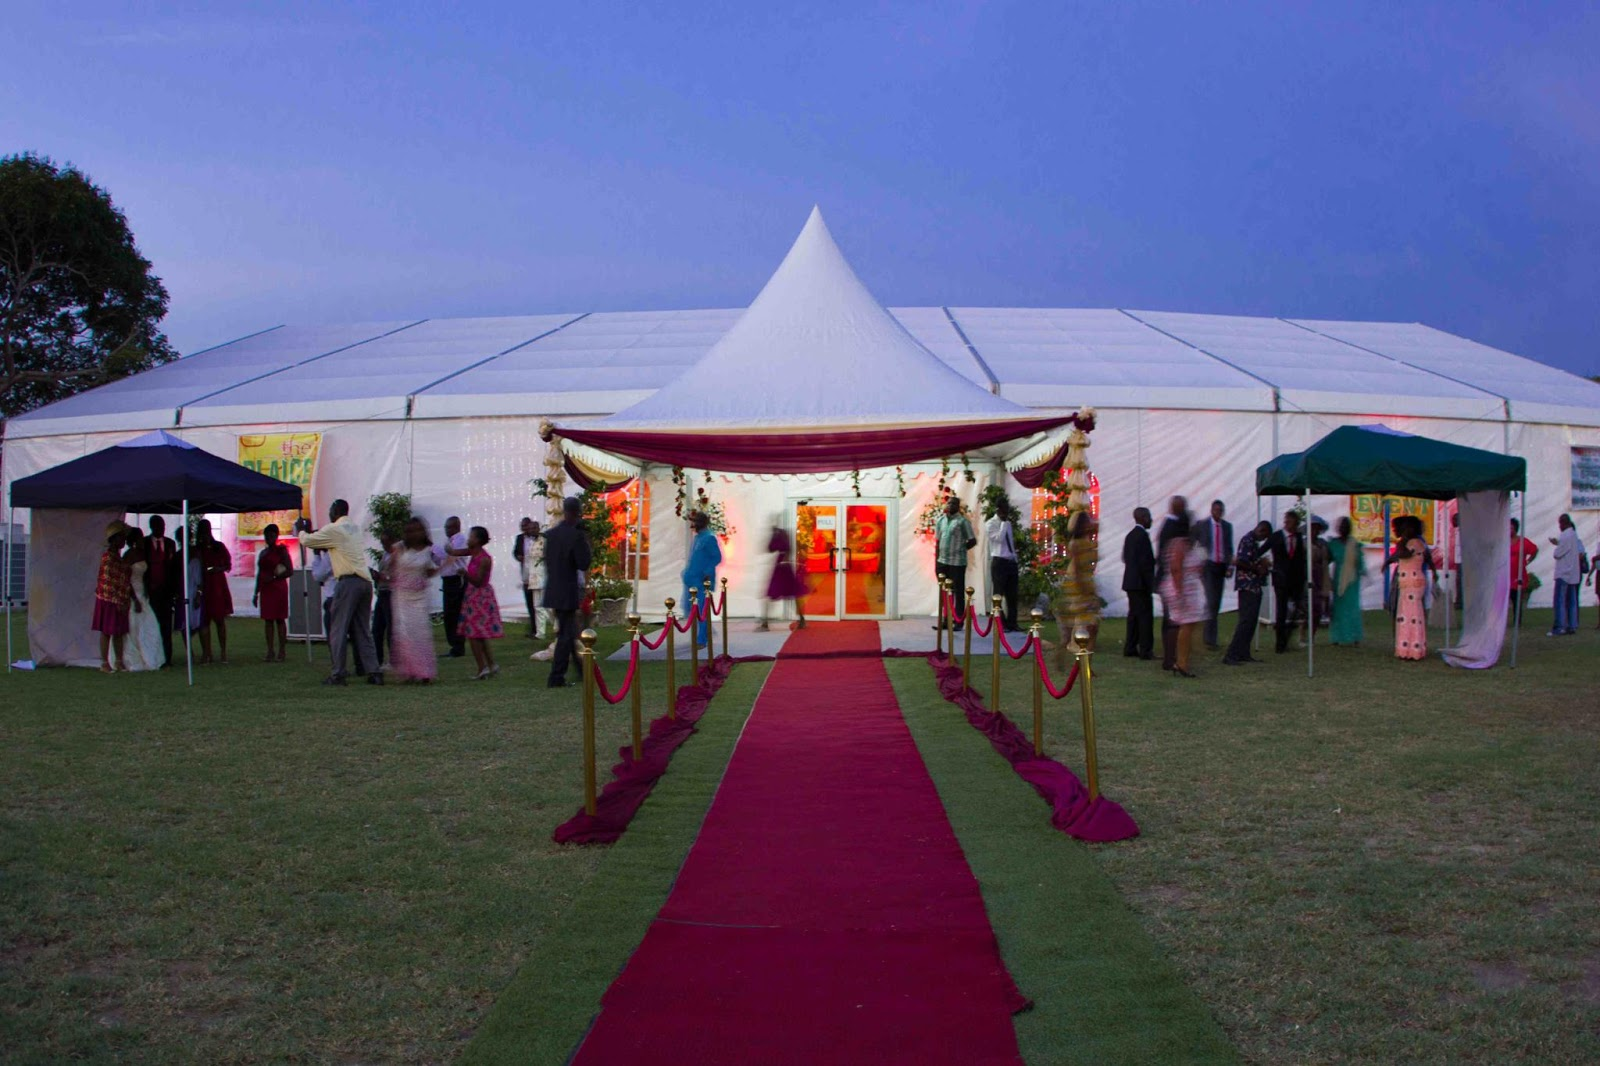 Luxe Weddings in Ghana The Plaice Events Centre. u201cA luxurious mobile air-conditioned tent ... & Ghana Rising: Luxe Weddings in Ghana: The Plaice Events Centre